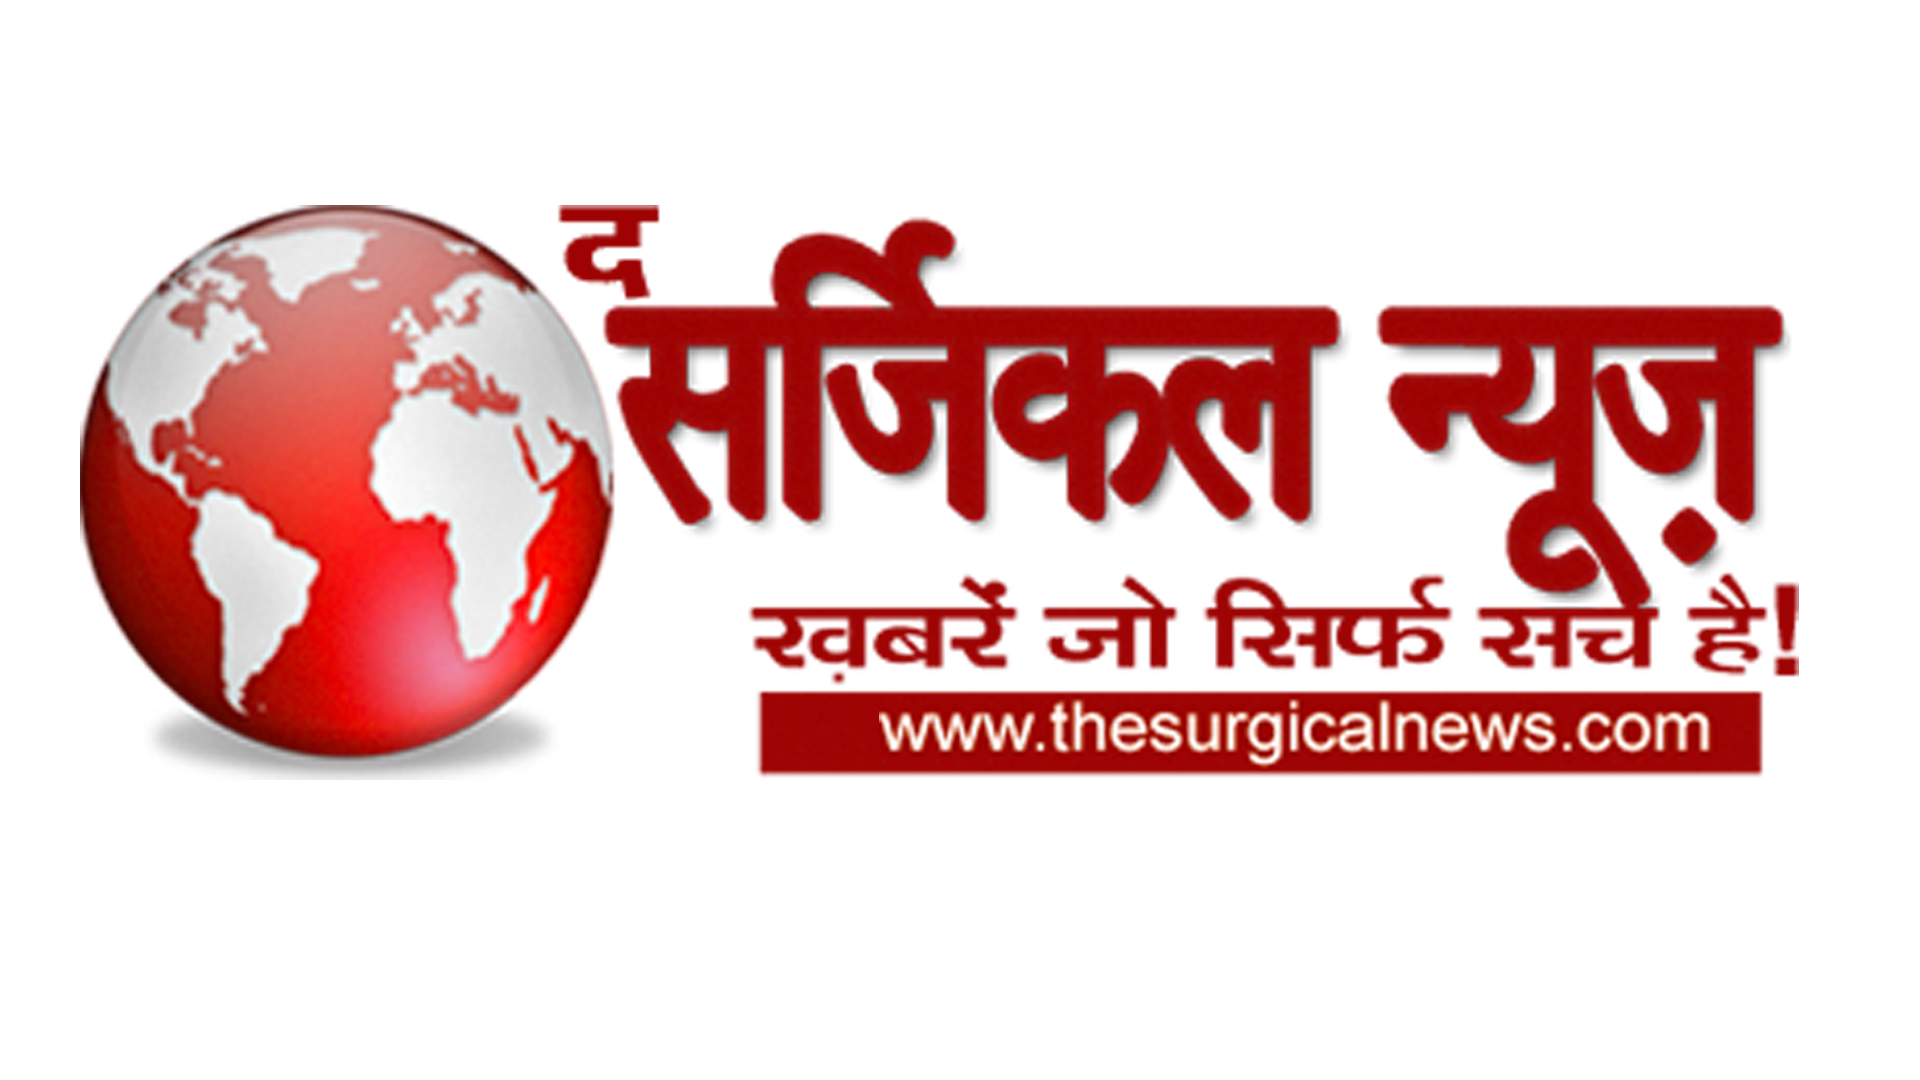 The Surgical News